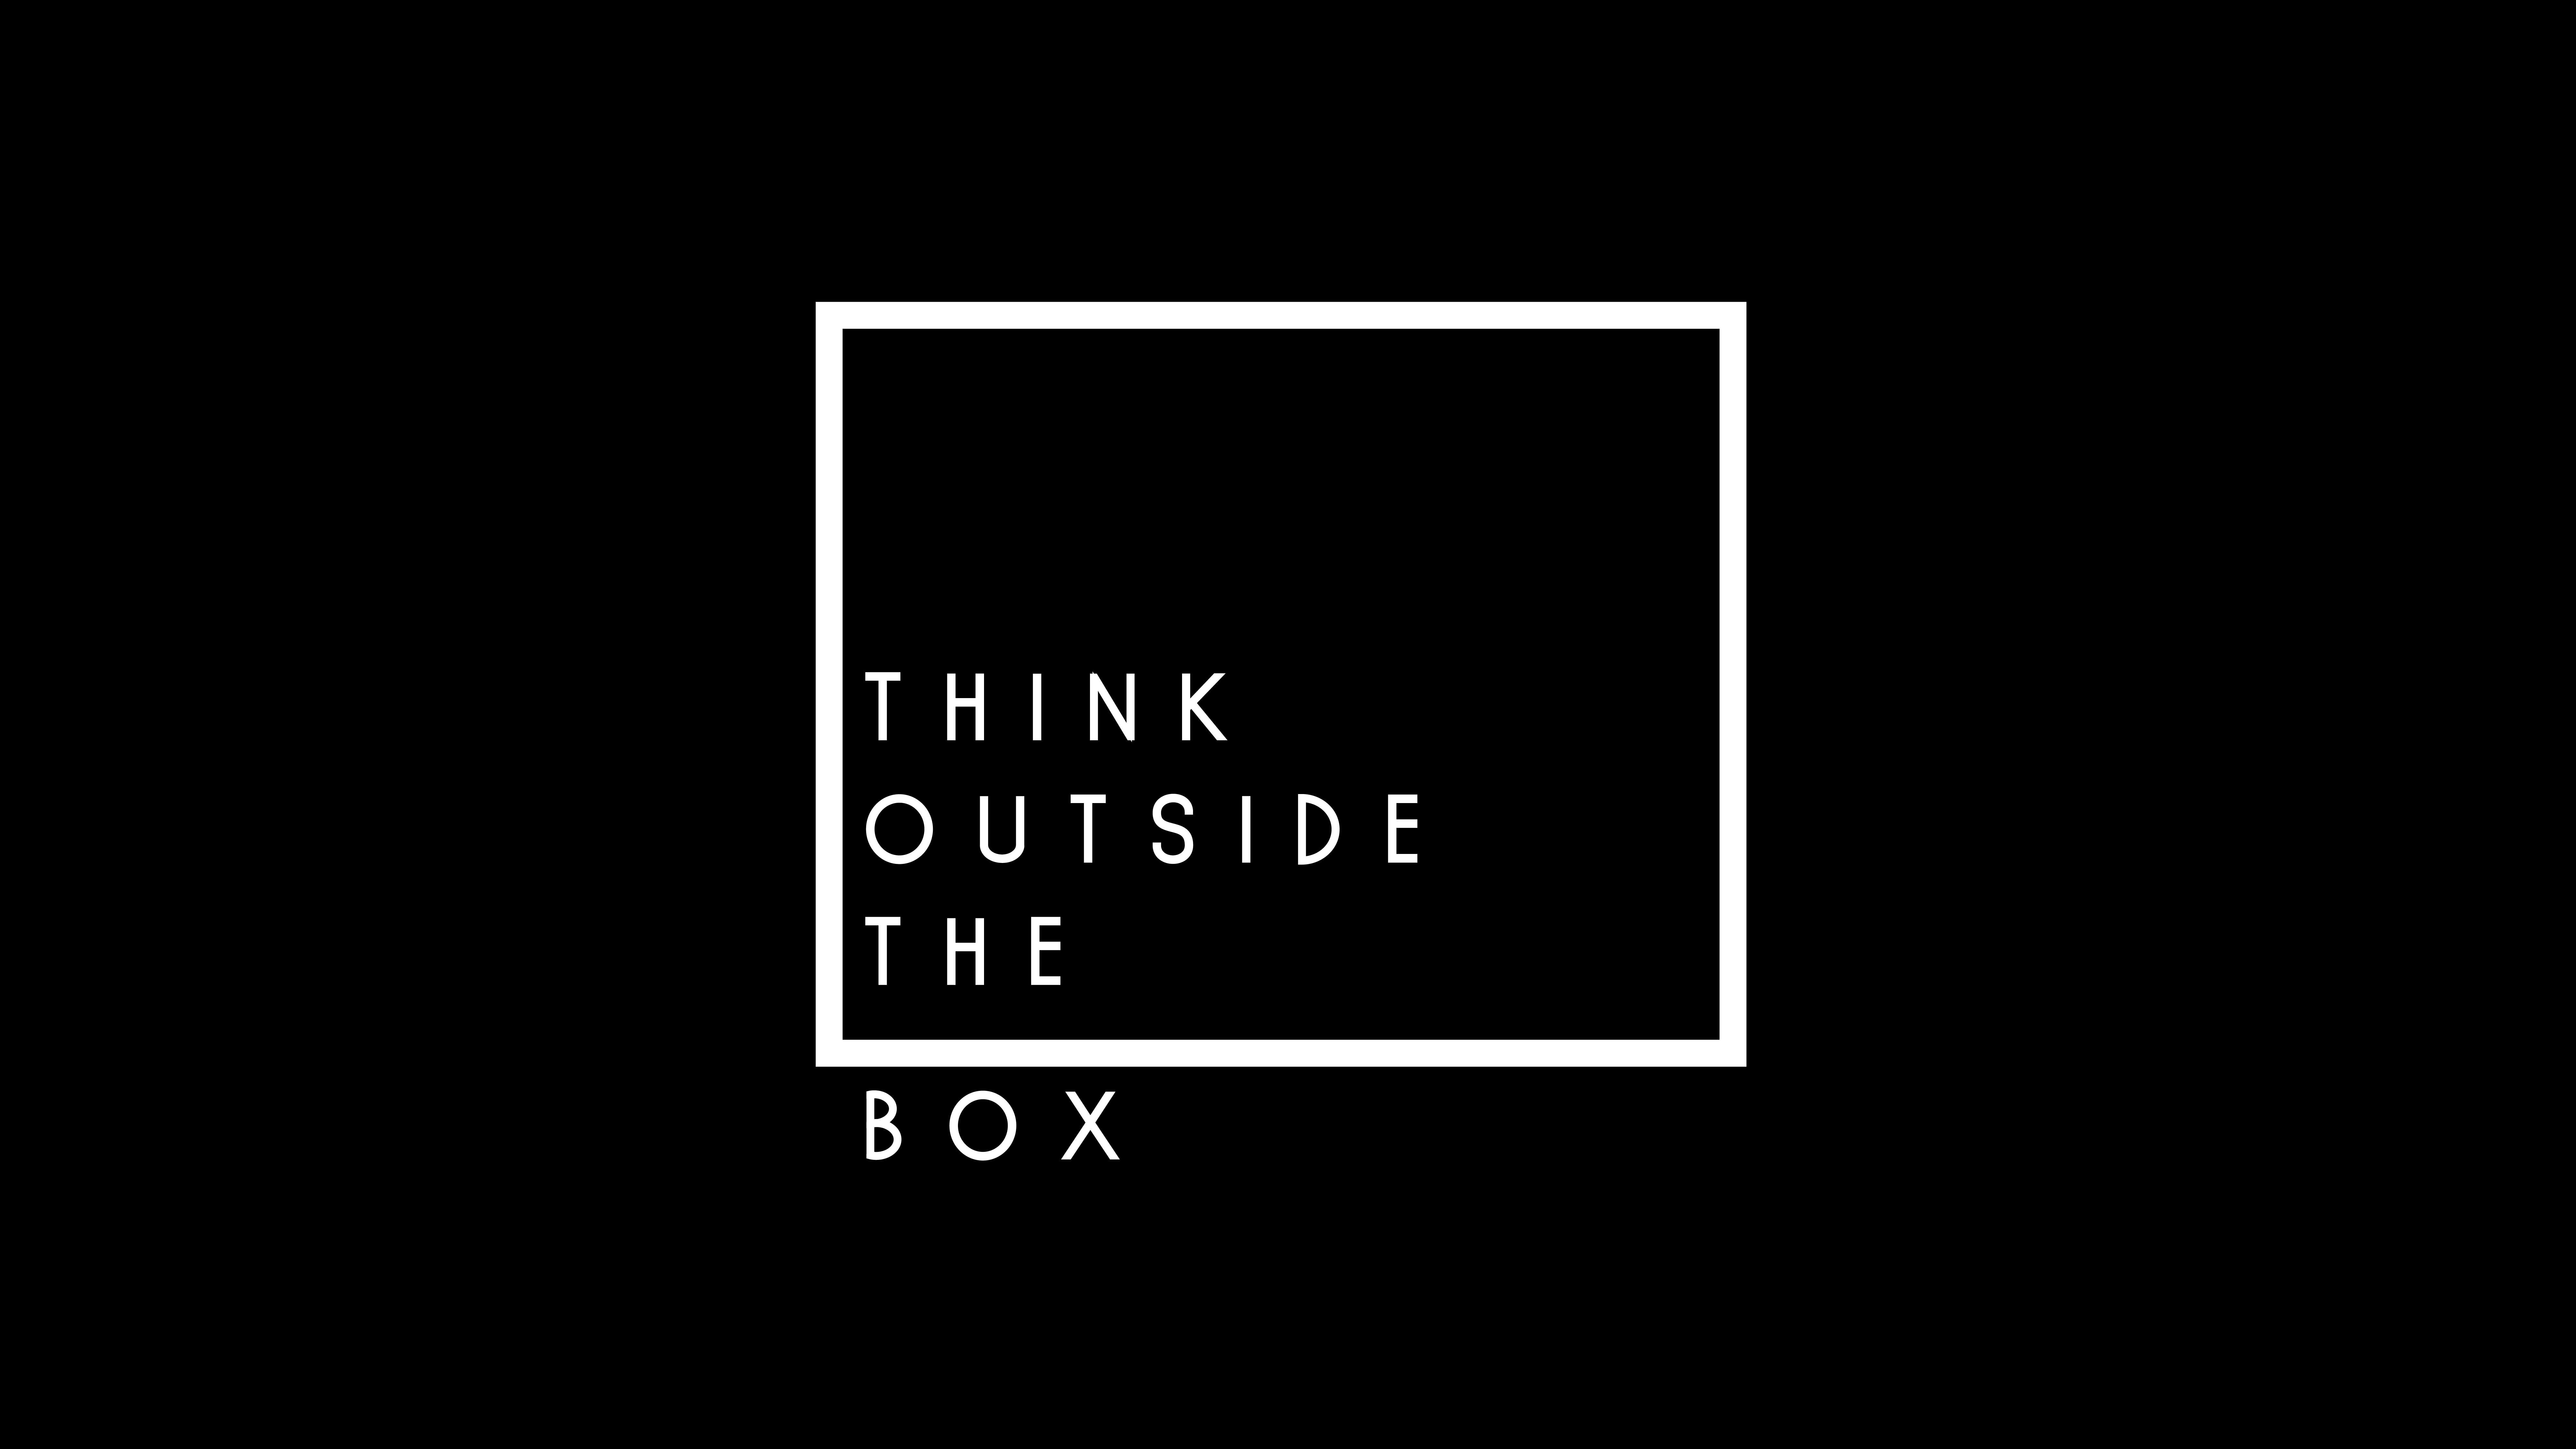 Think Outside The Box Popular Quotes Black 4k 8k 8k Wallpaper Hdwallpaper Desktop Popular Quotes Desktop Wallpaper Design Desktop Wallpaper Black